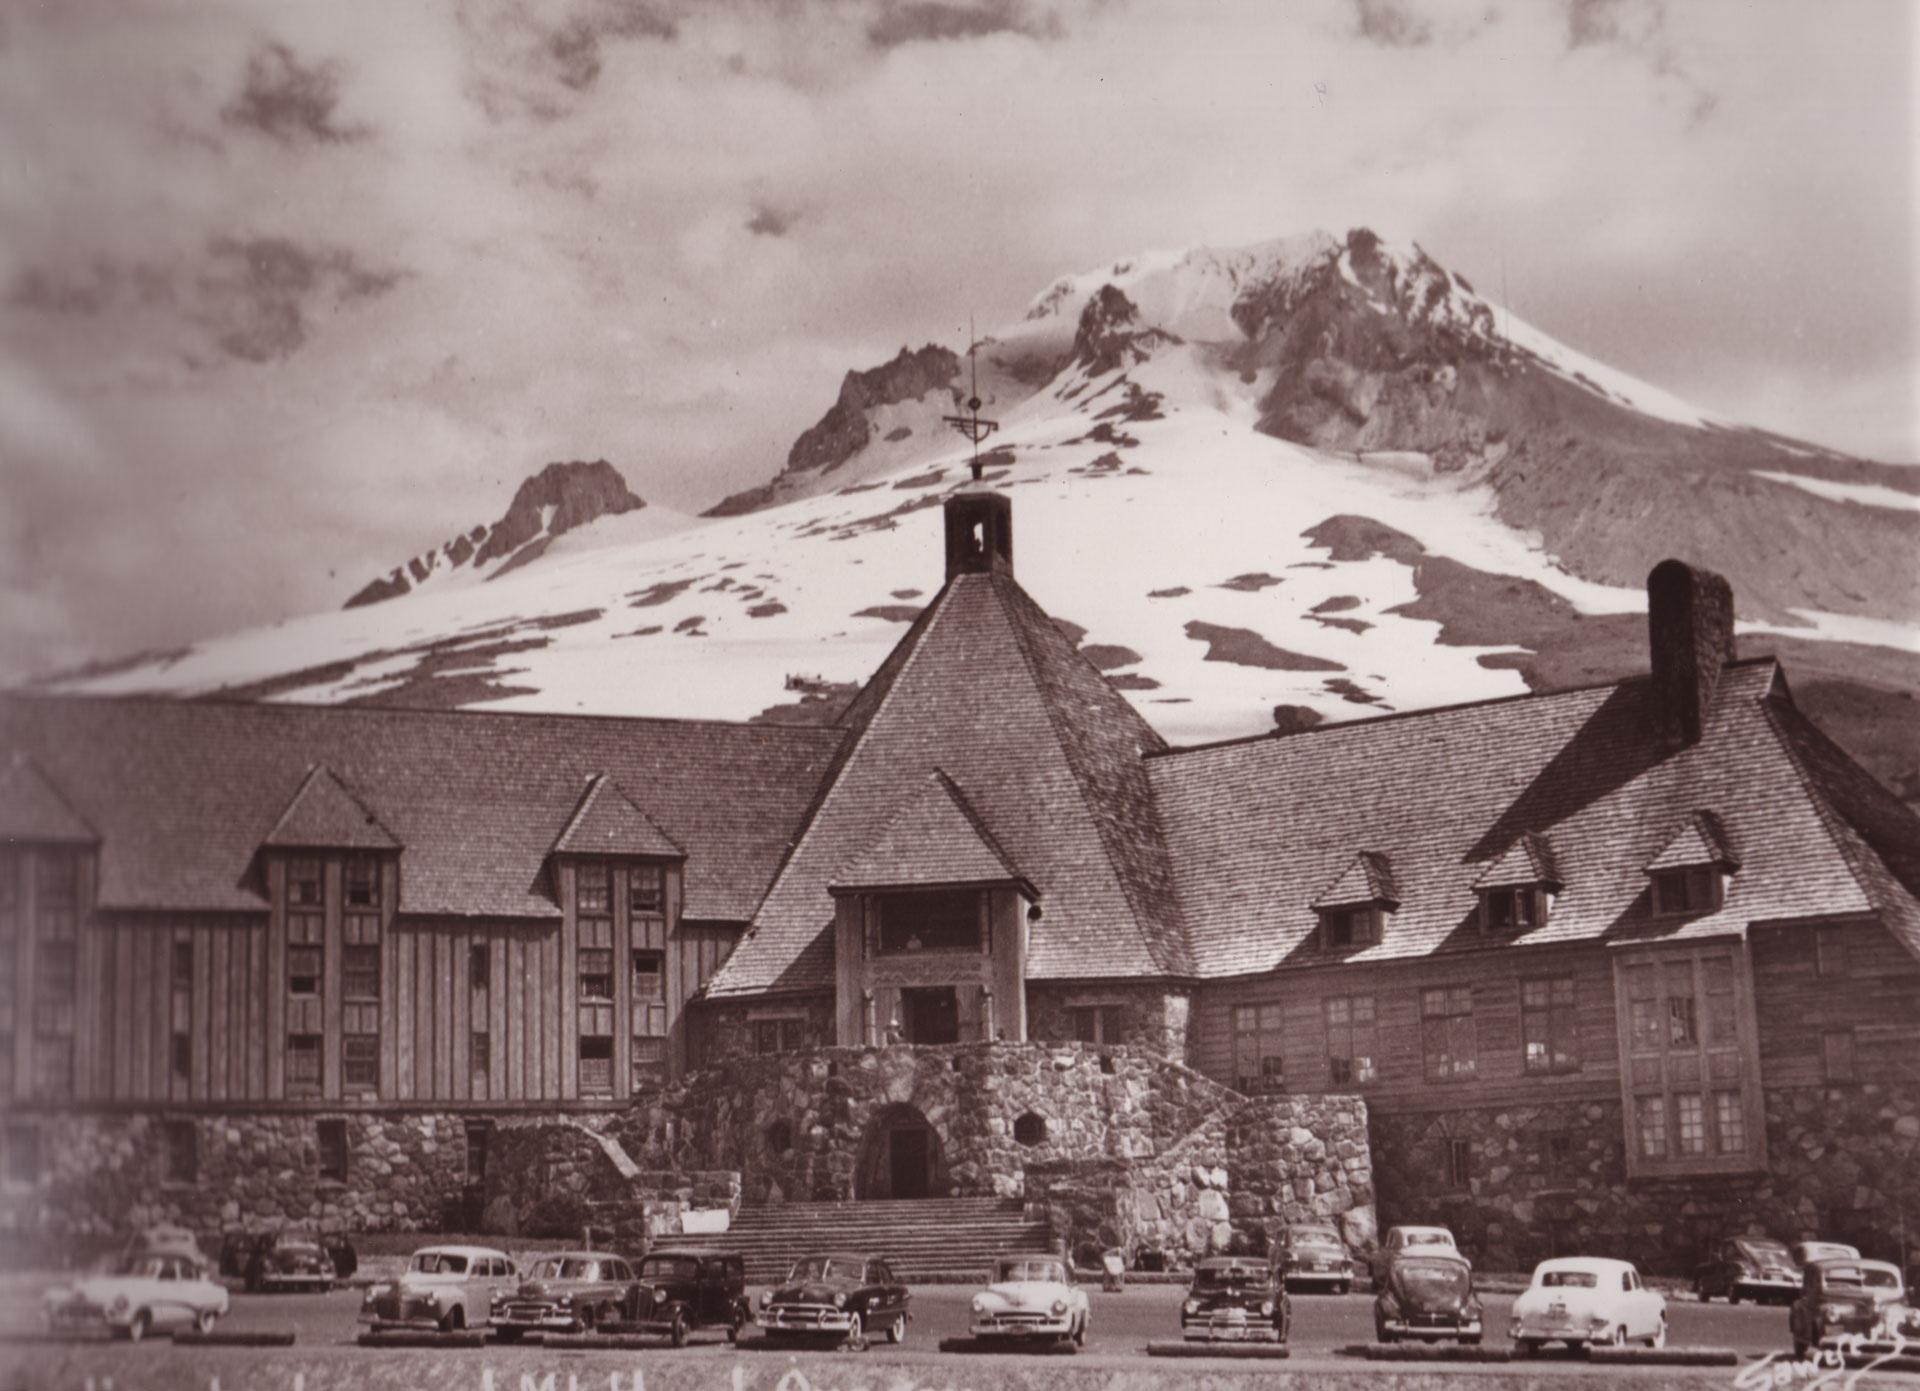 TIMBERLINE LODGE, CREATED BETWEEN 1936 AND 1938